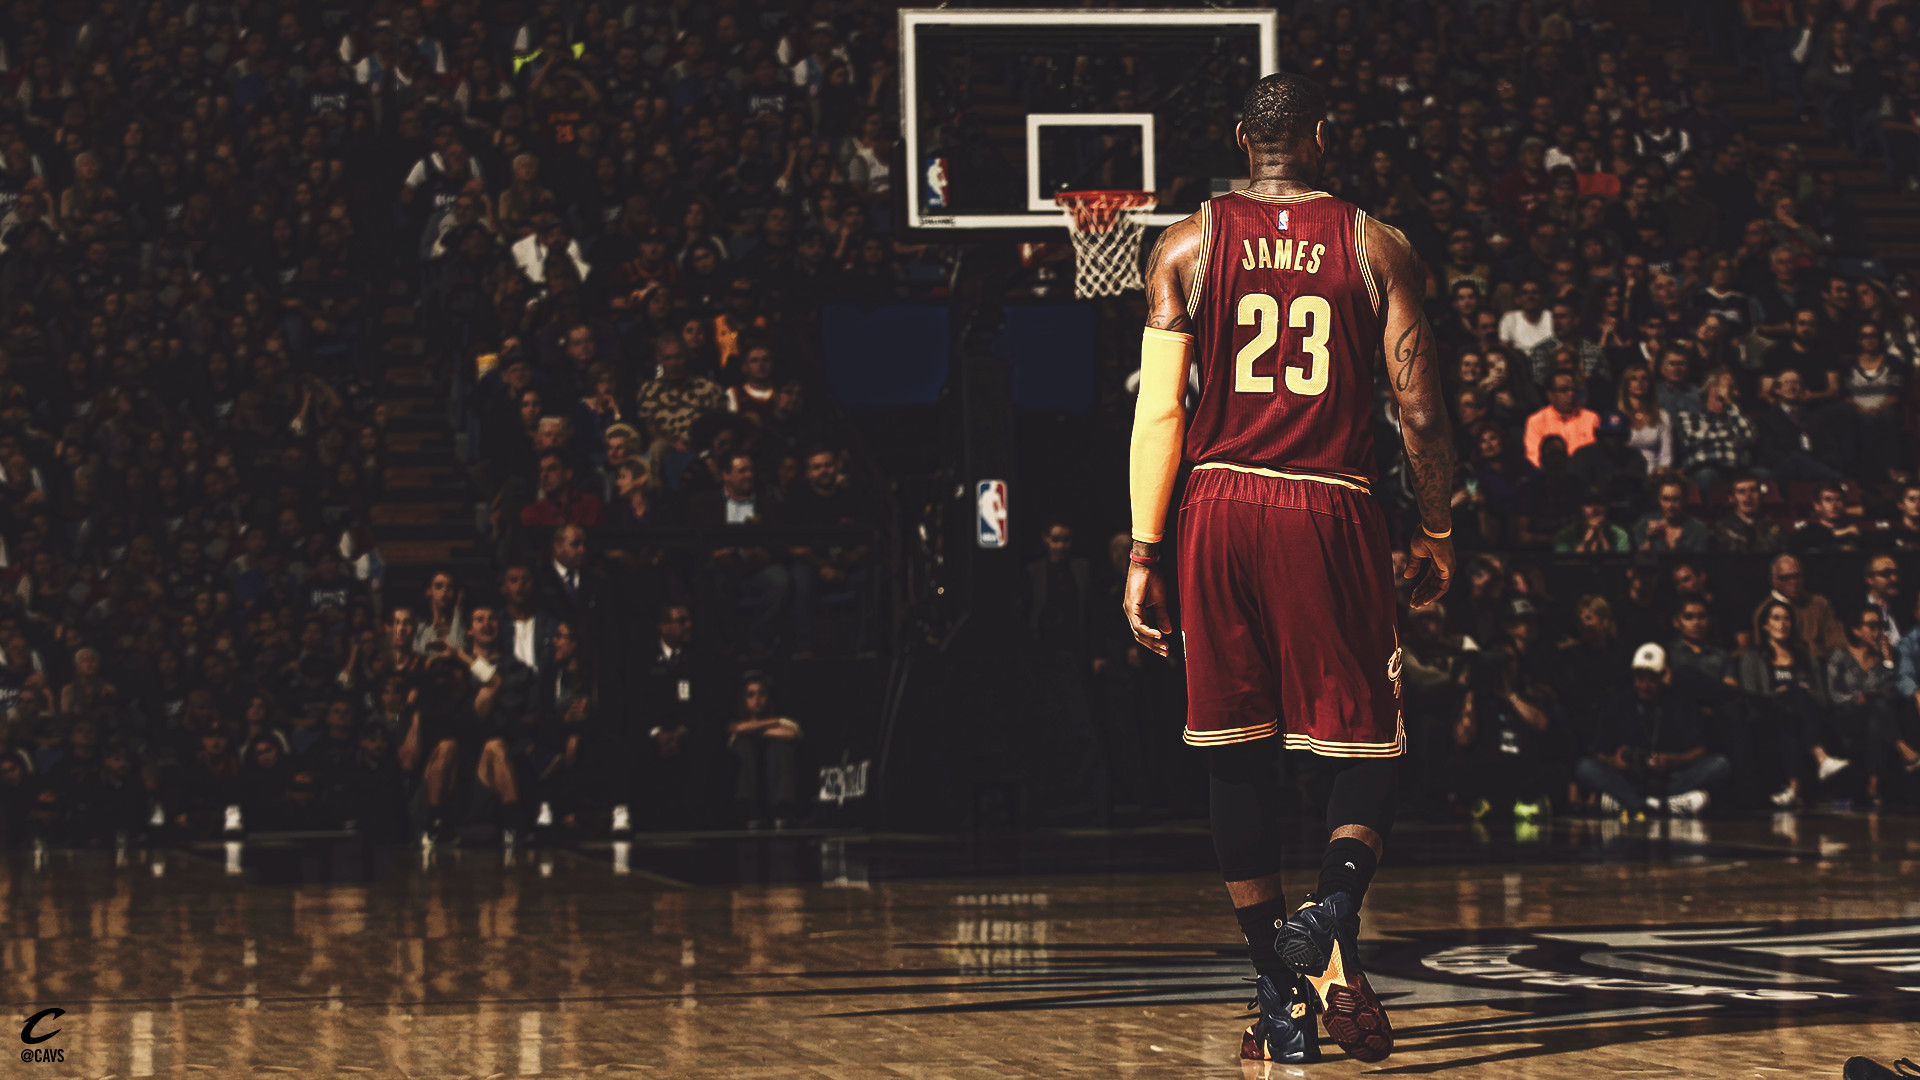 Fantastic Wallpaper Mac Lebron James - 492330-full-size-lebron-james-wallpaper-2017-1920x1080-free-download  Graphic_85948.jpg